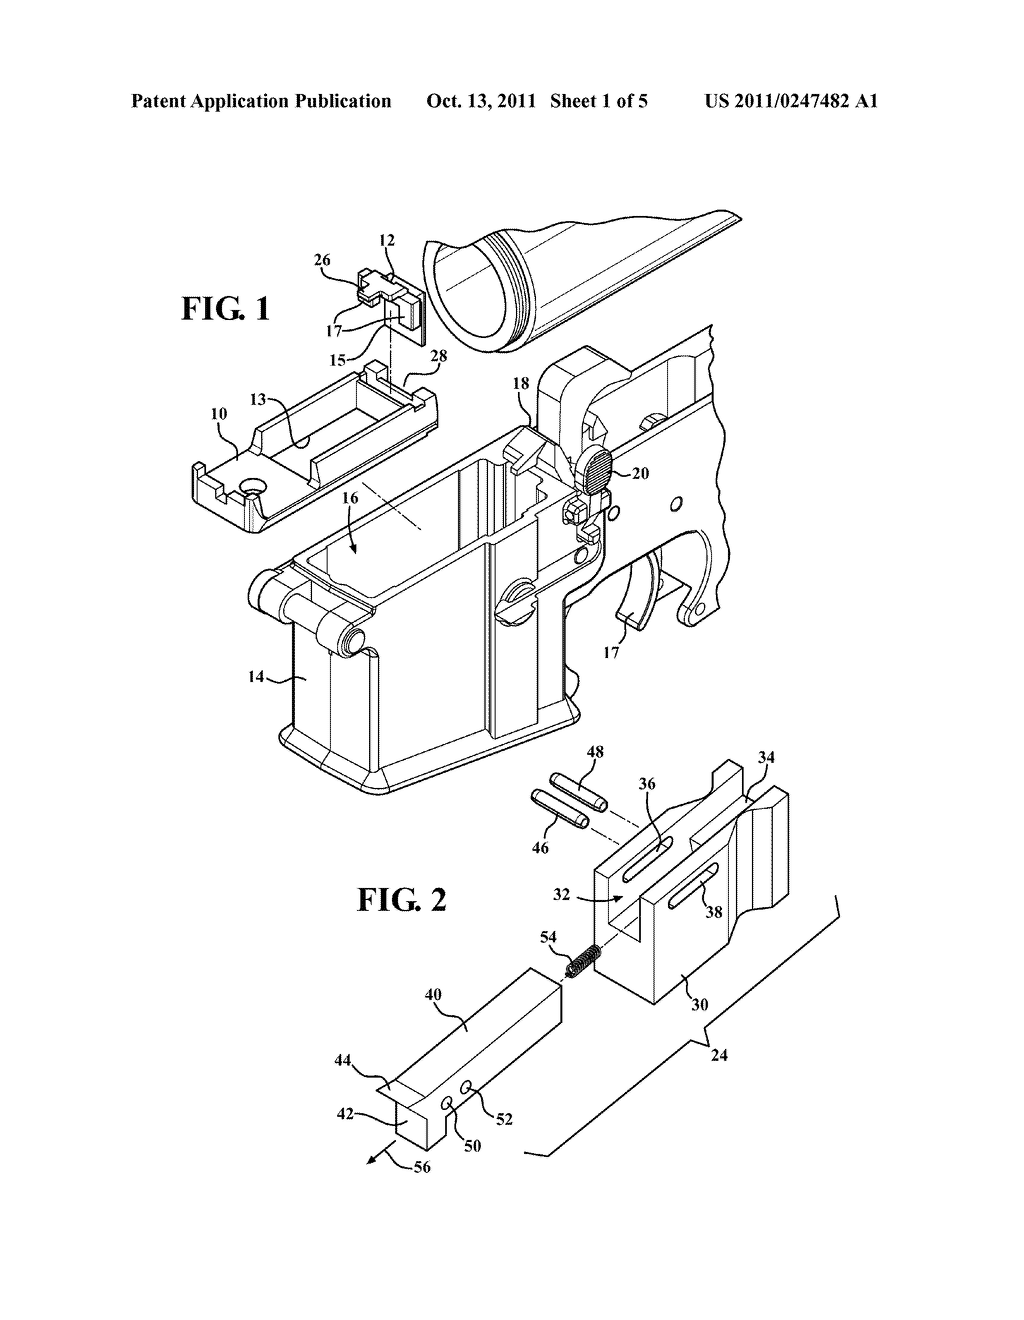 Drop Bolt Hold Open Actuator For Use With Ar 15 M16 Type Firearms Parallel Circuit Diagram And Incorporating A Modified Displaceable Follower Engaging Catch Mechanism